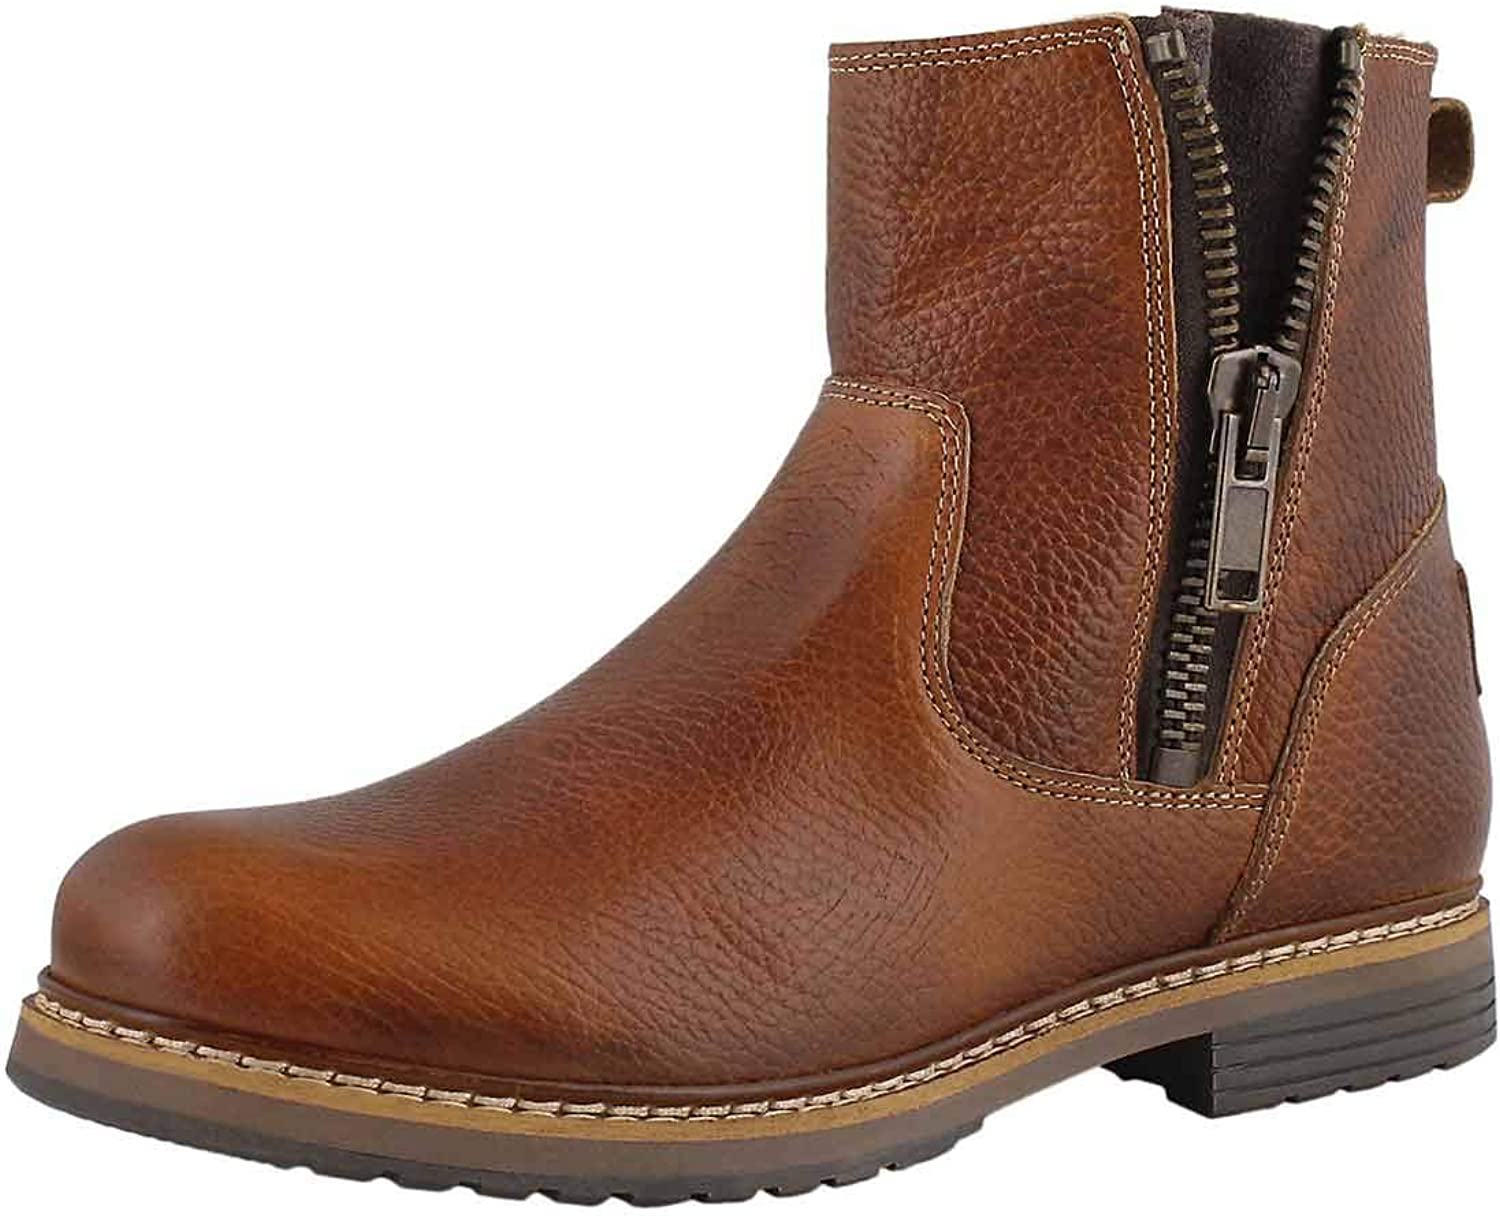 Maddison Women's Tiana Casual Ankle Boot